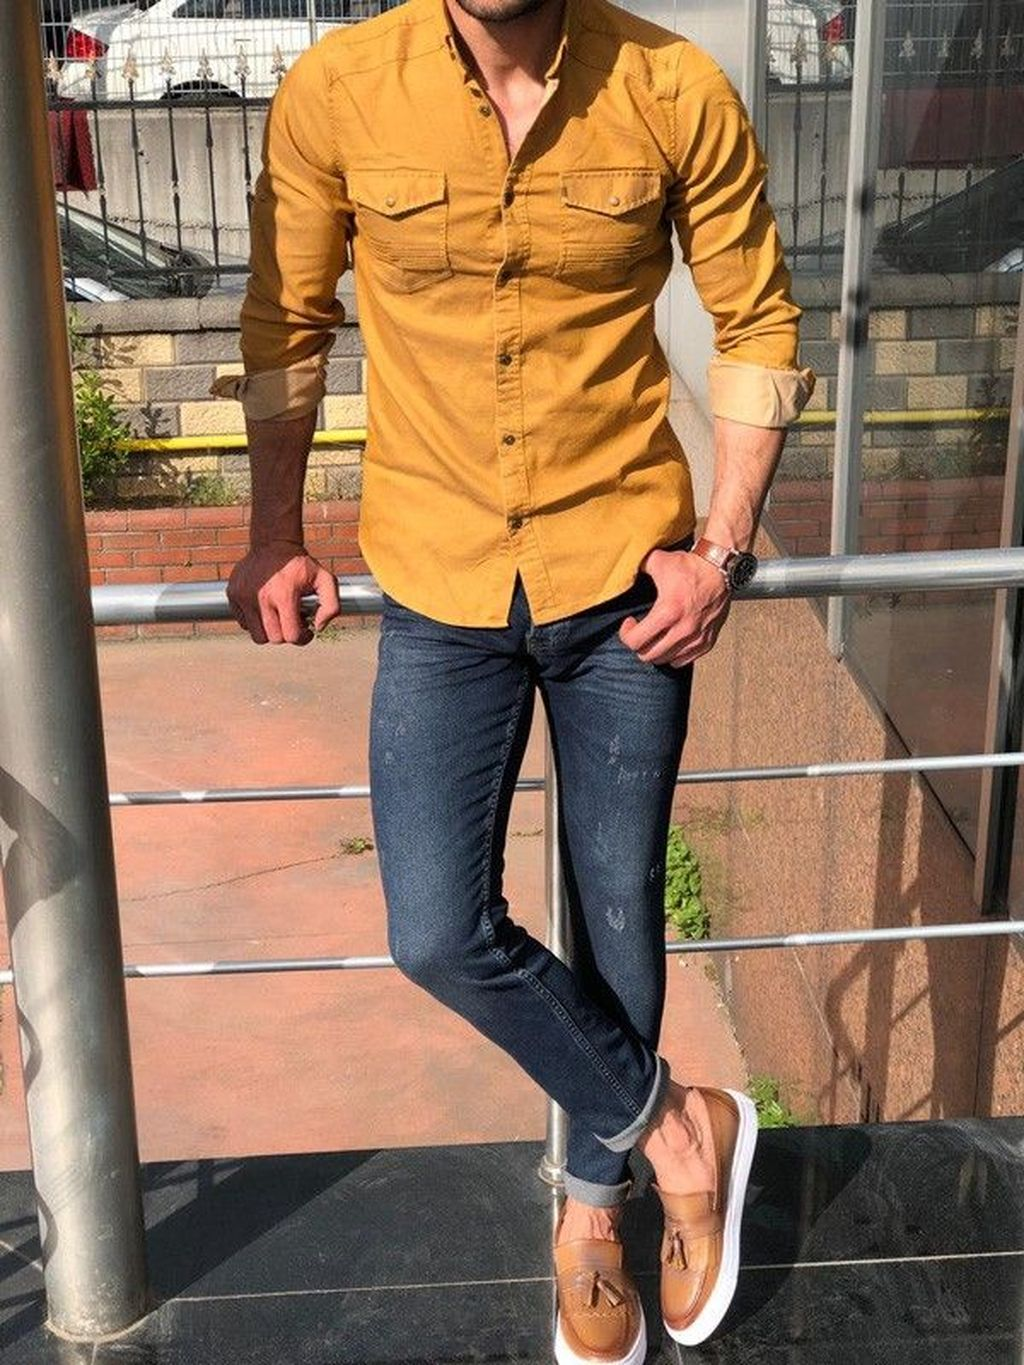 40 Gorgeous Men Outfits Ideas With Jeans For Any Season Shirt Outfit Men Mens Fashion Jeans Mens Casual Outfits [ 1365 x 1024 Pixel ]